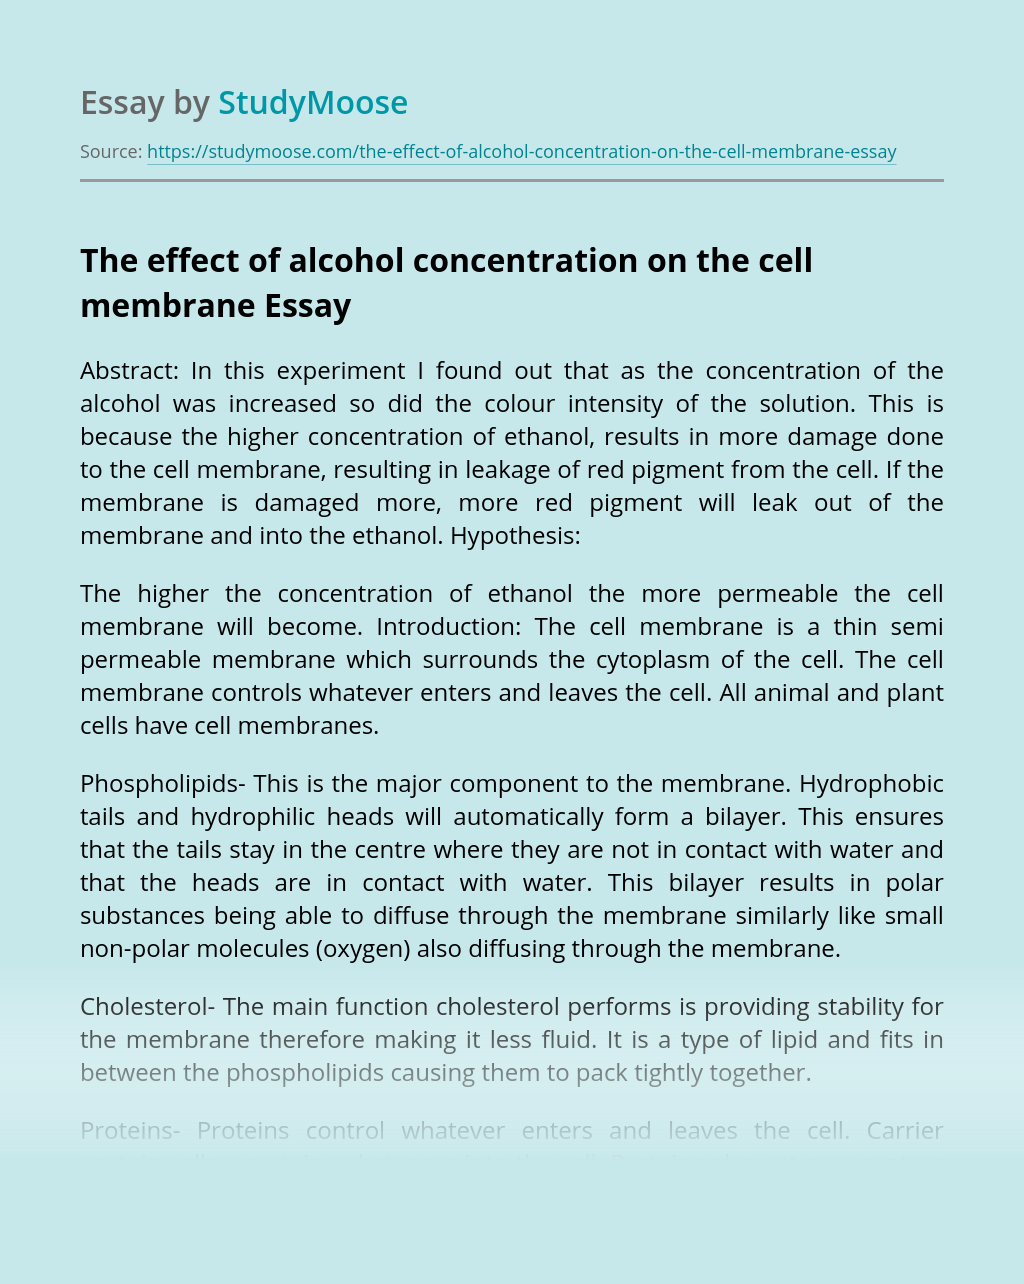 The effect of alcohol concentration on the cell membrane